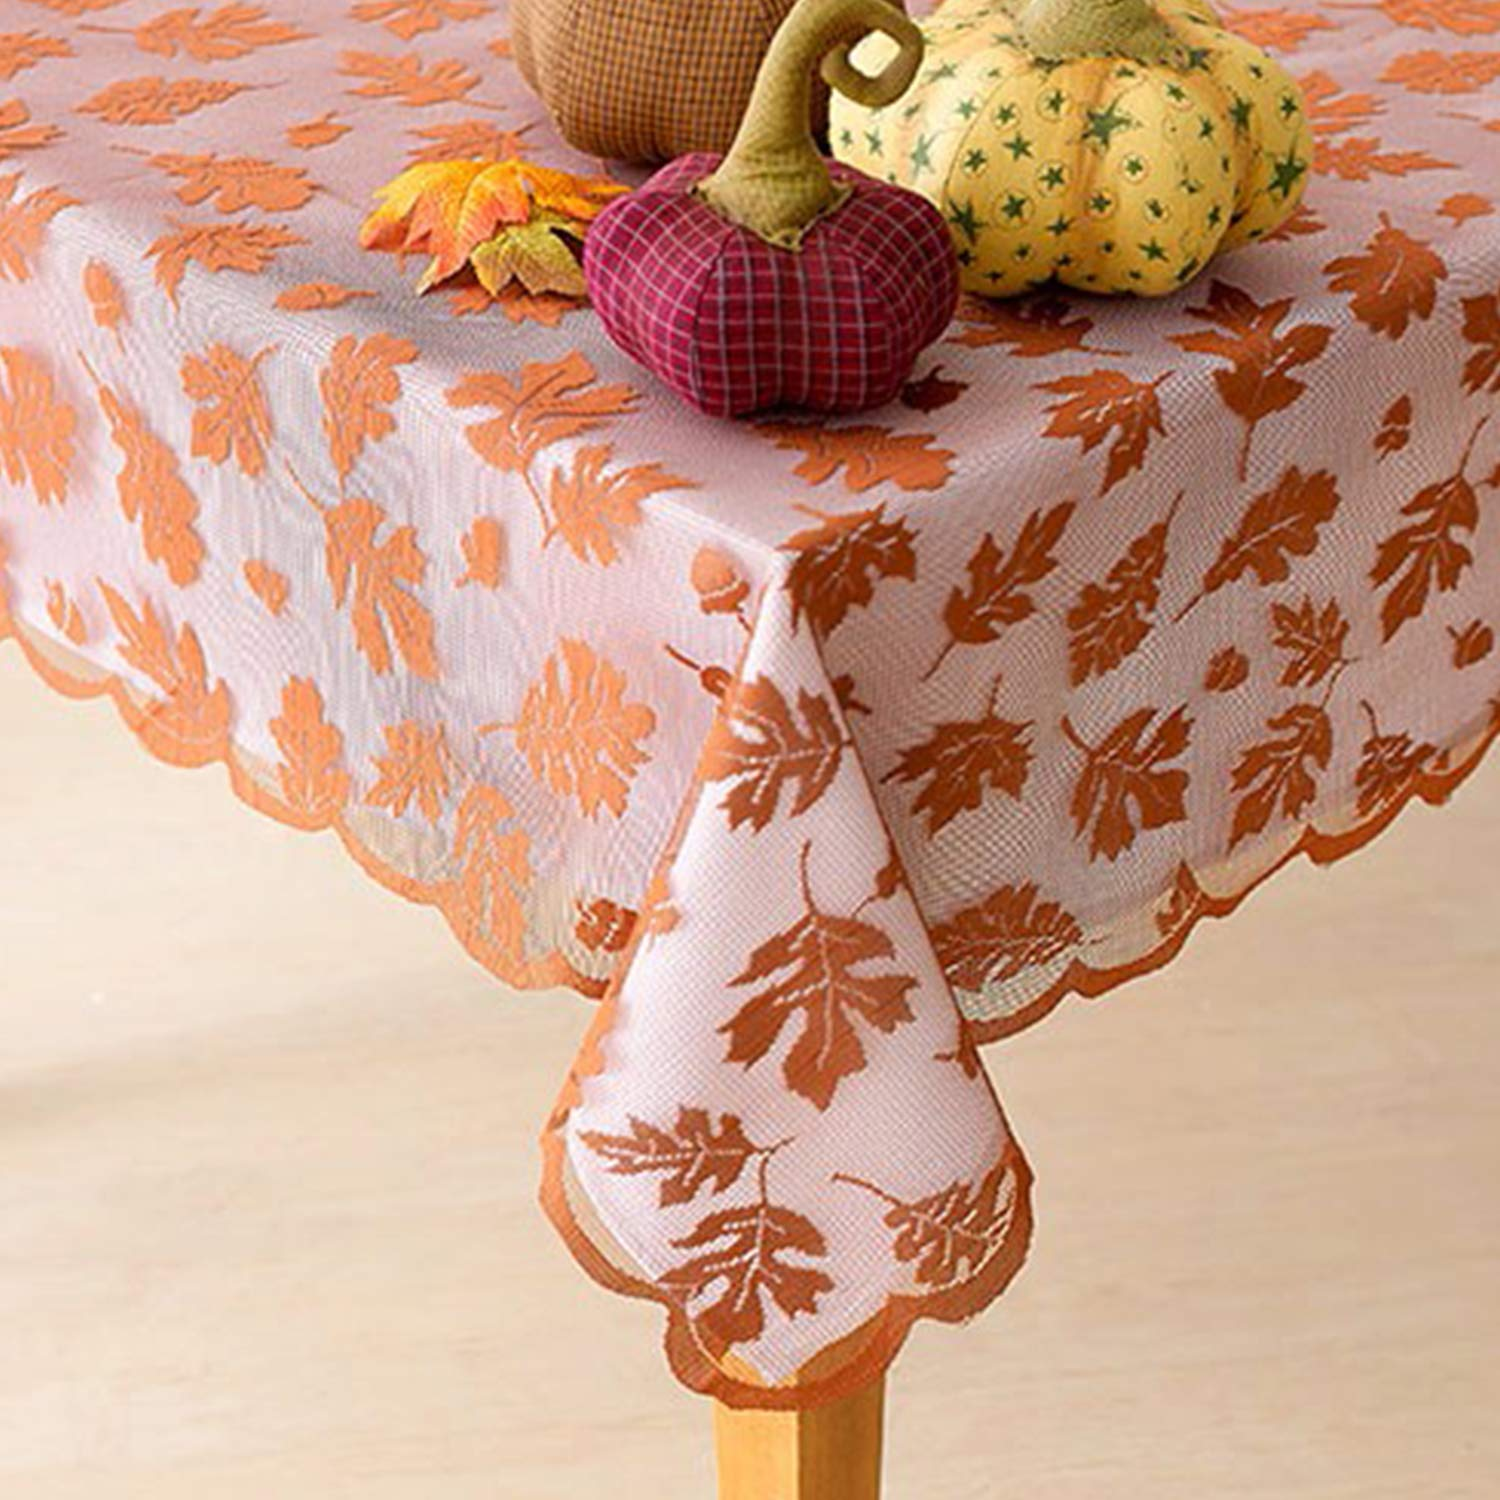 Thanksgiving Tablecloth 52 x 70 Inch Maple Leaves Brown Lace Rectangle Table Cover Party Dining Table Living Room Bedroom Kitchen Indoor Party Favor Harvest Festival Gift Halloween Fall Decor Yardom